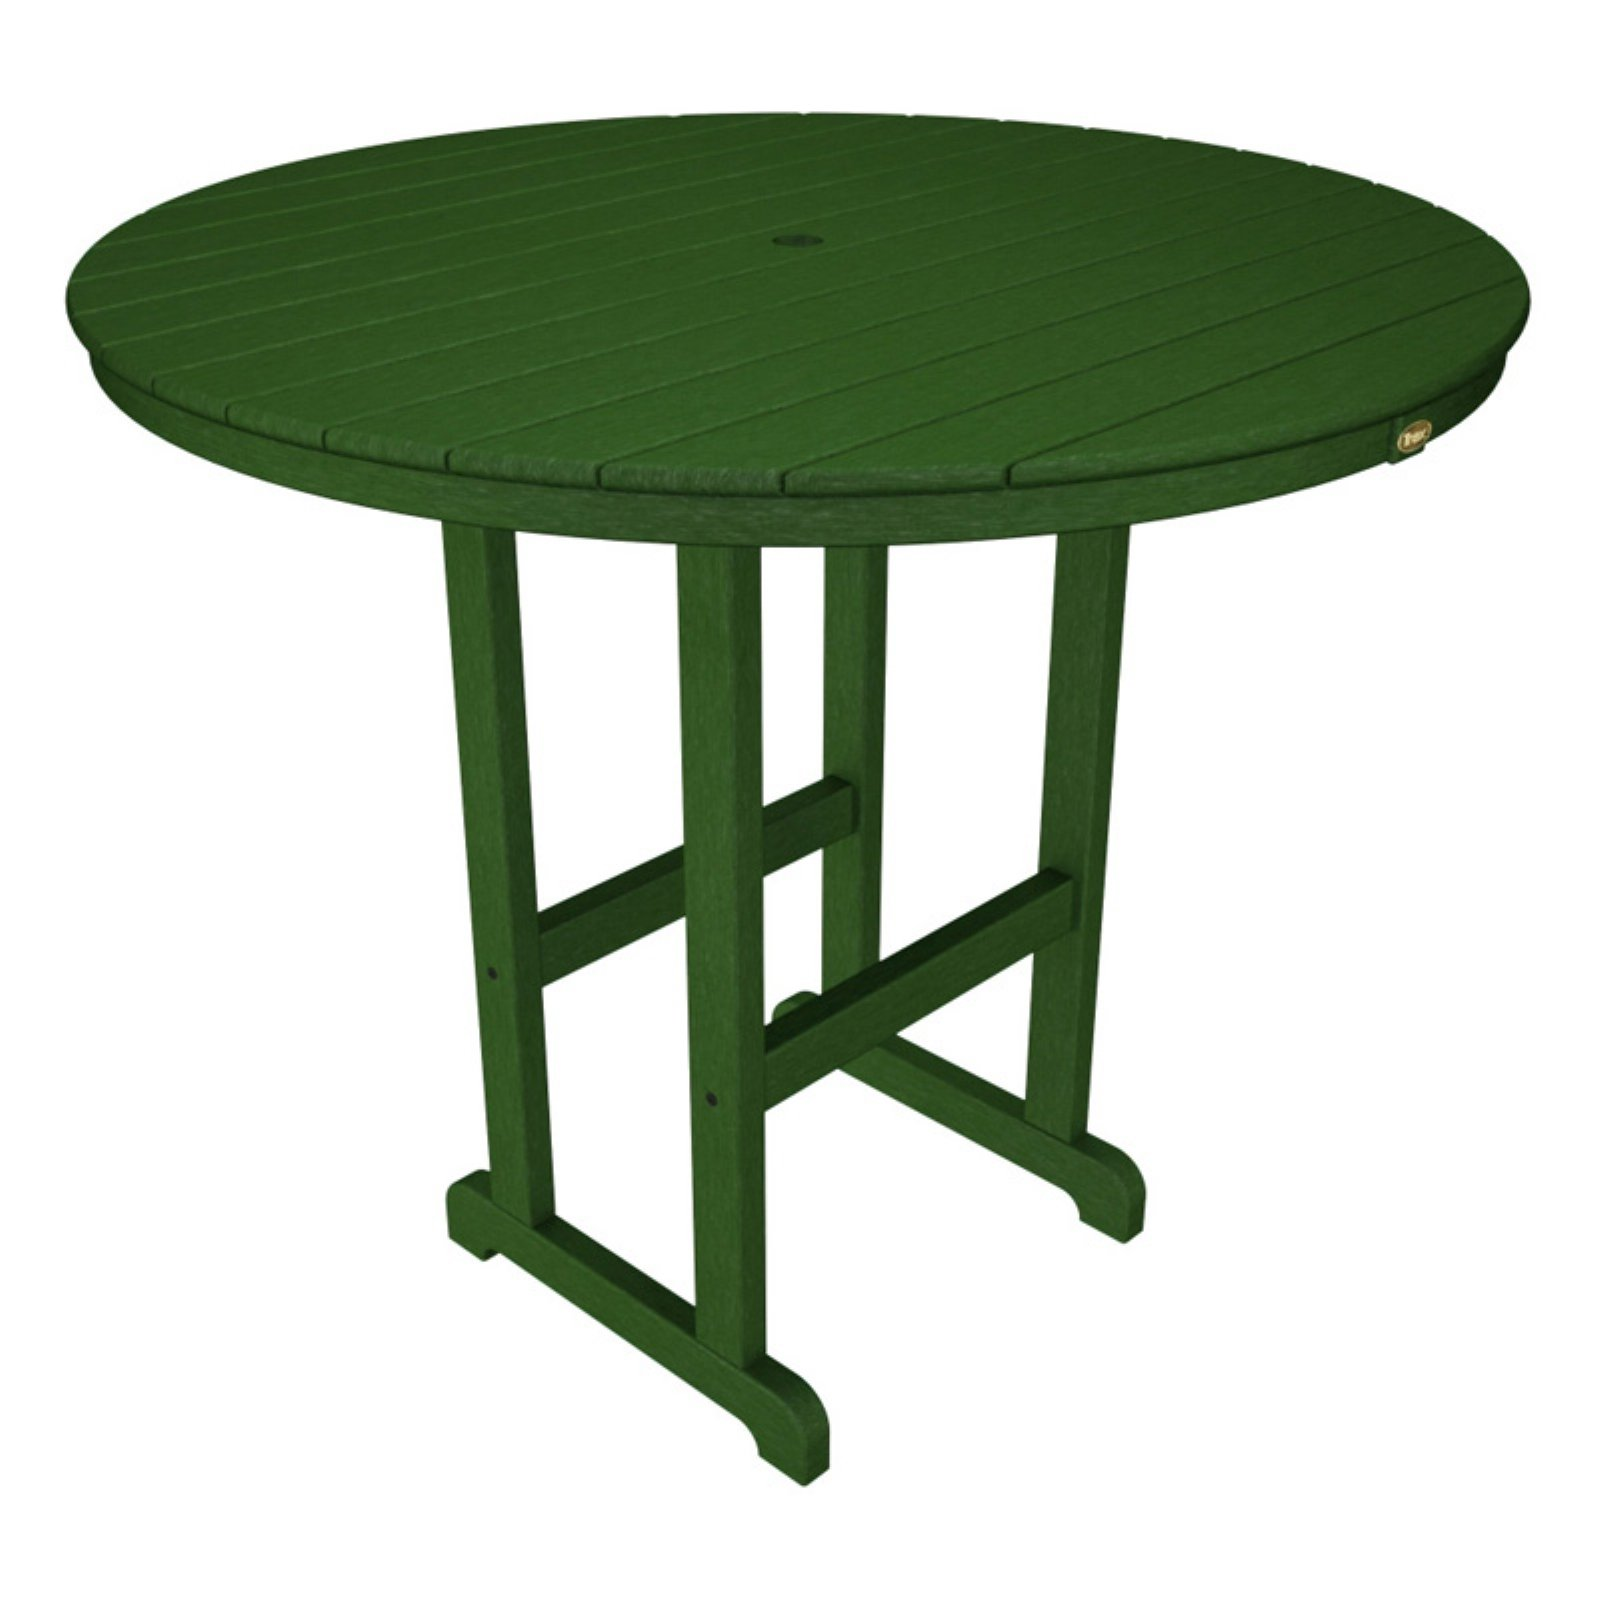 Trex Outdoor Furniture Recycled Plastic Monterey Bay Round Bar Height Table